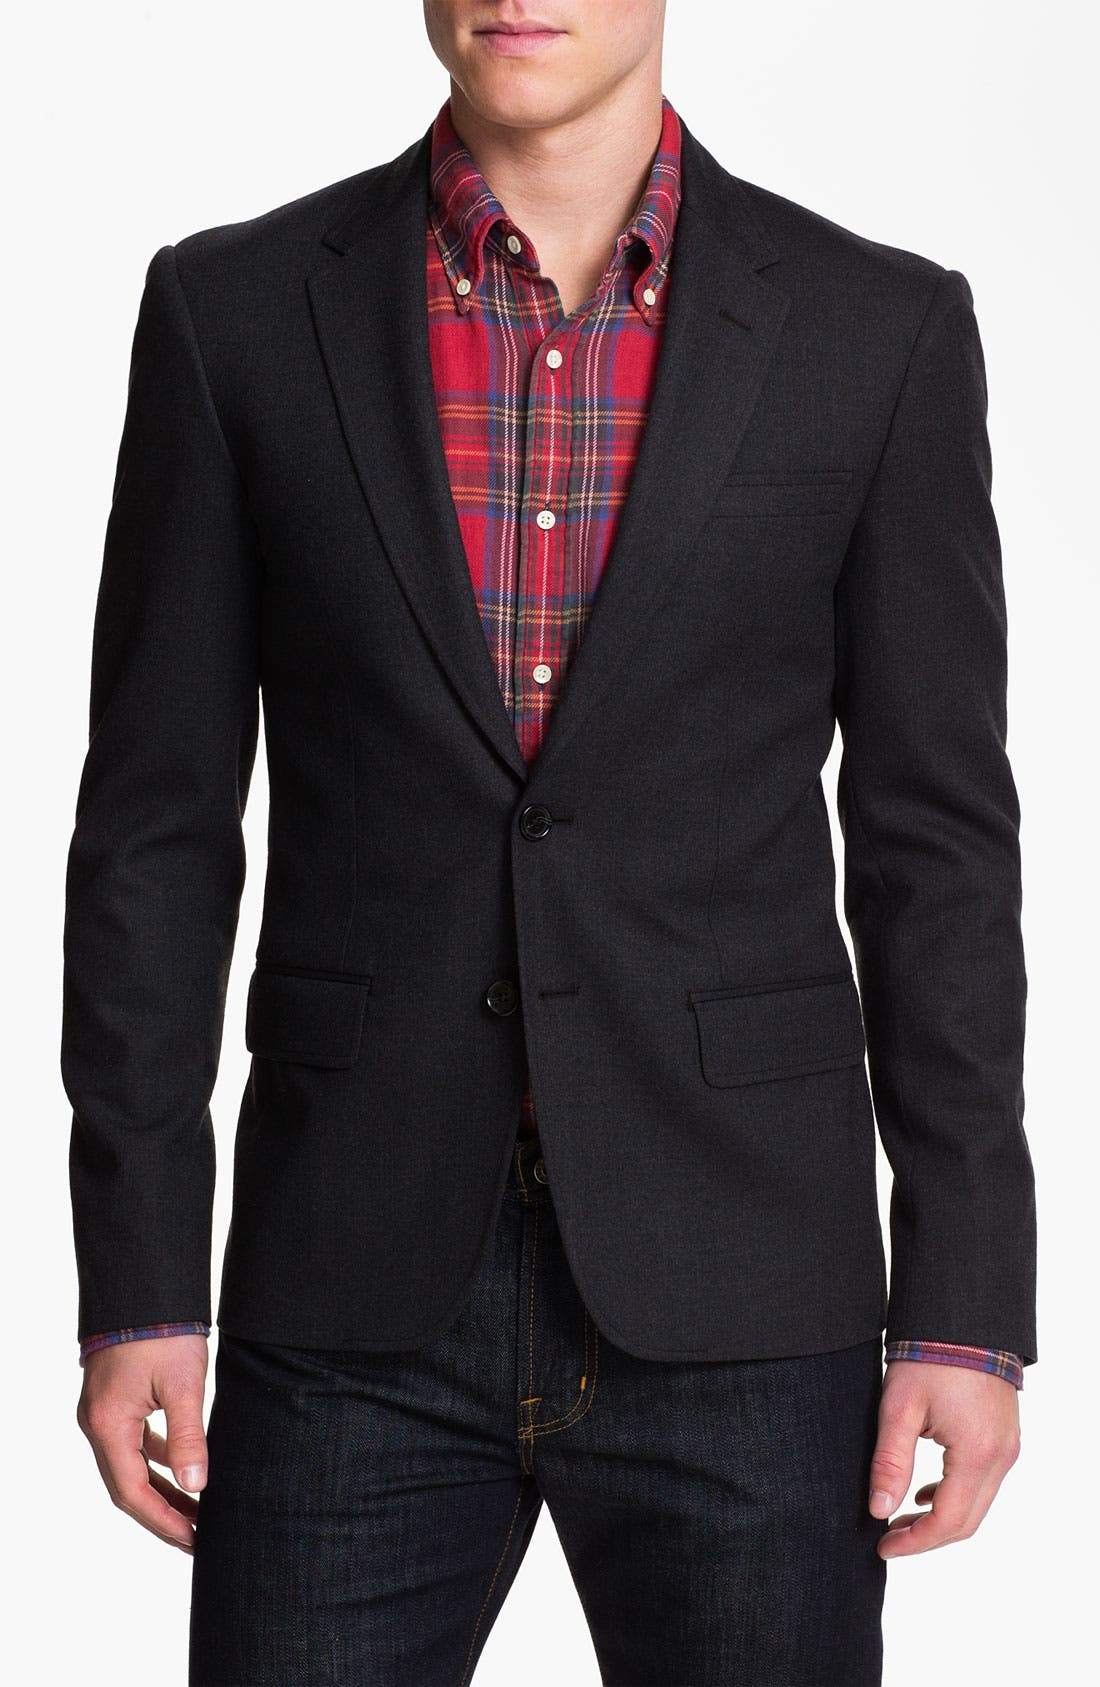 Alternate Image 1 Selected - Michael Kors Wool Blend Blazer with Leather Trim